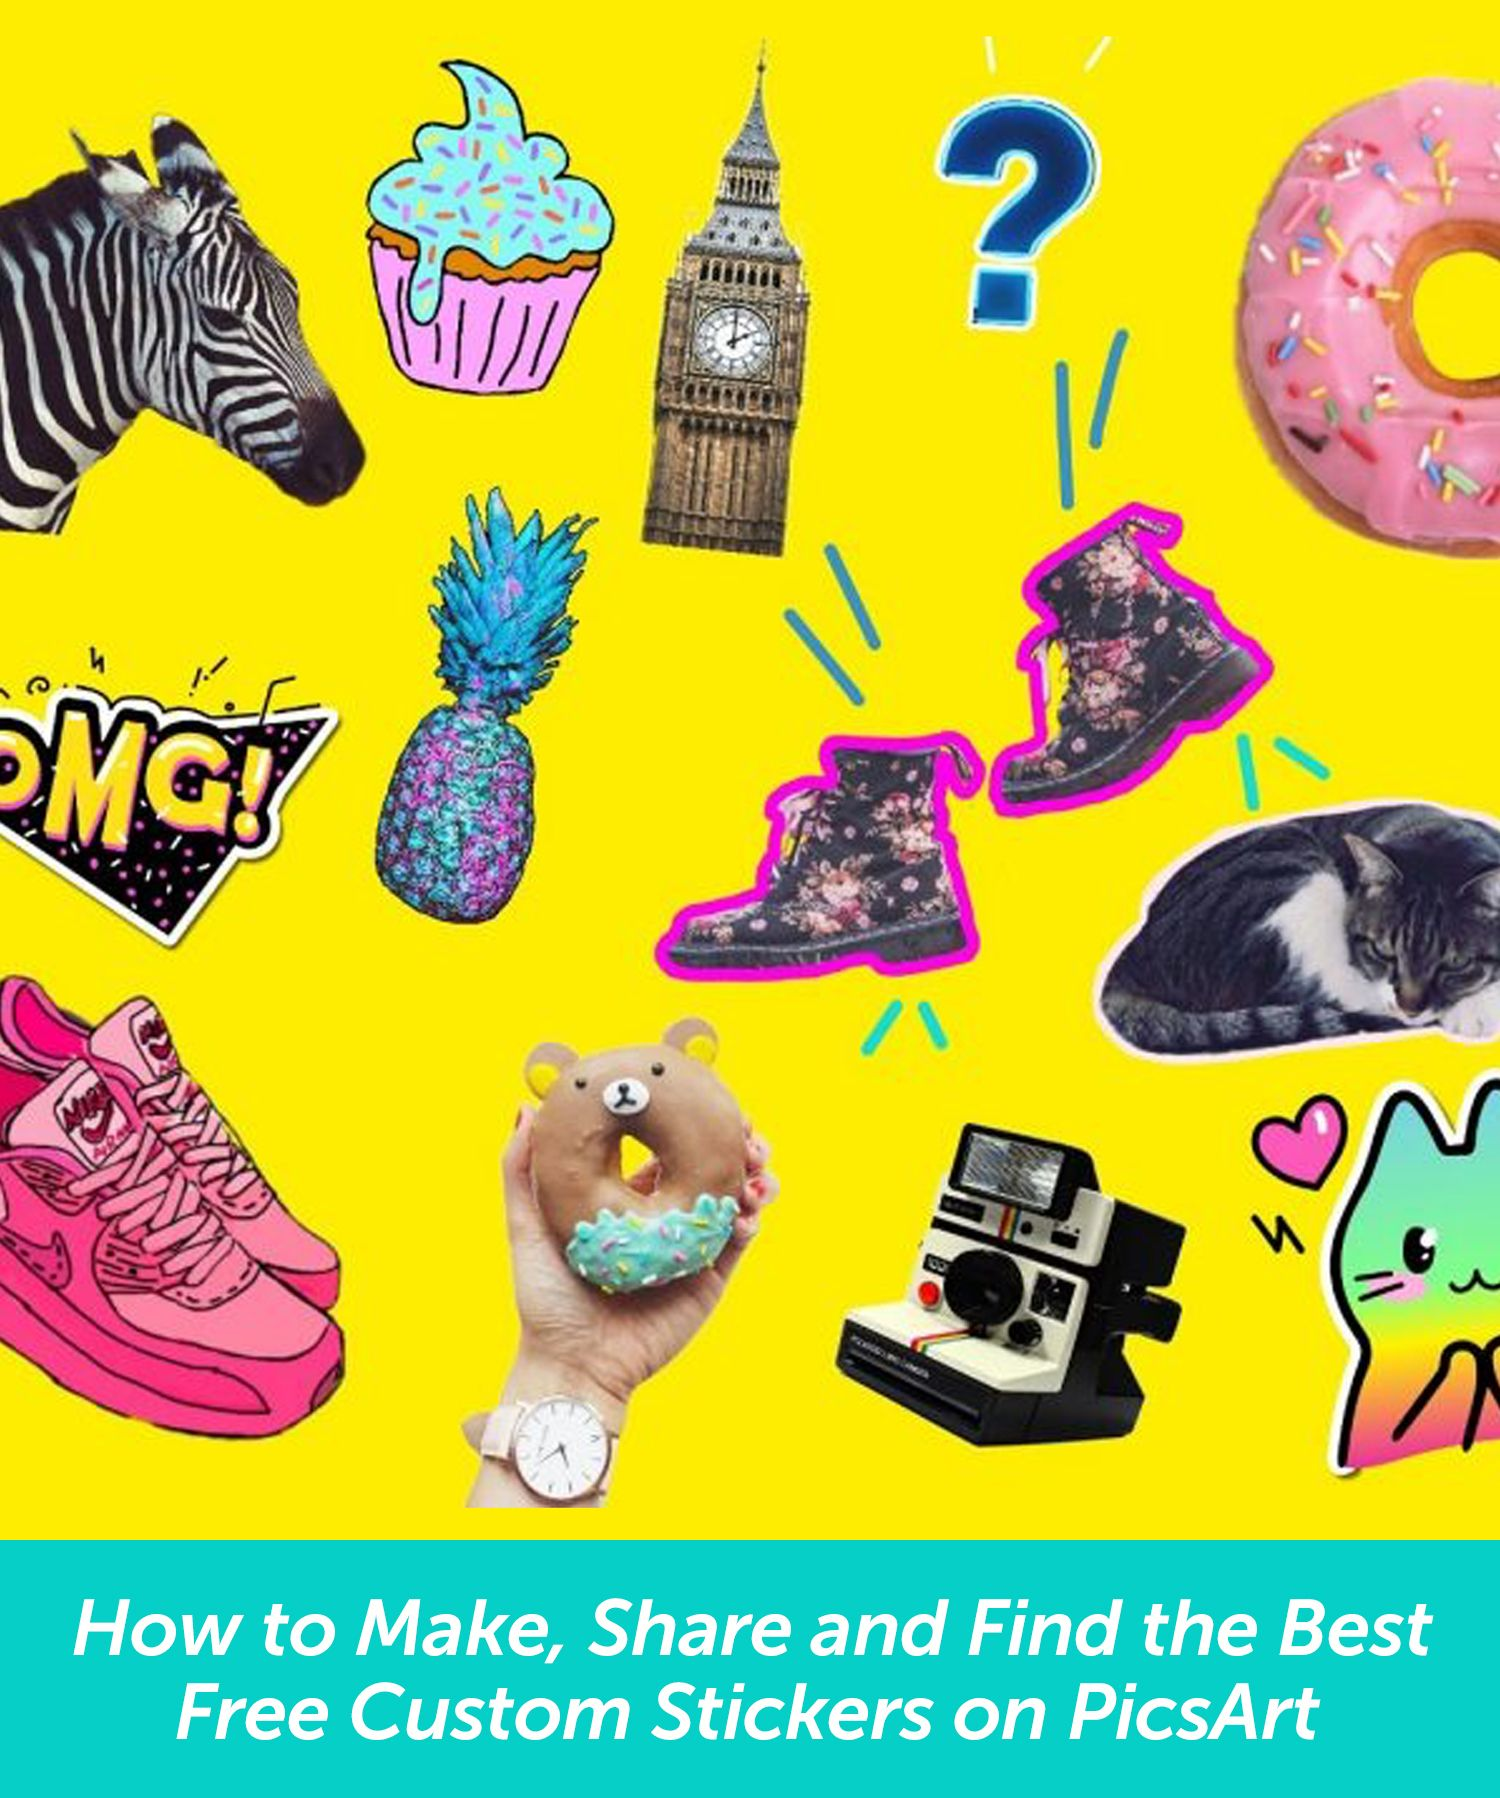 We just dropped a major release and basically reinvented the sticker game